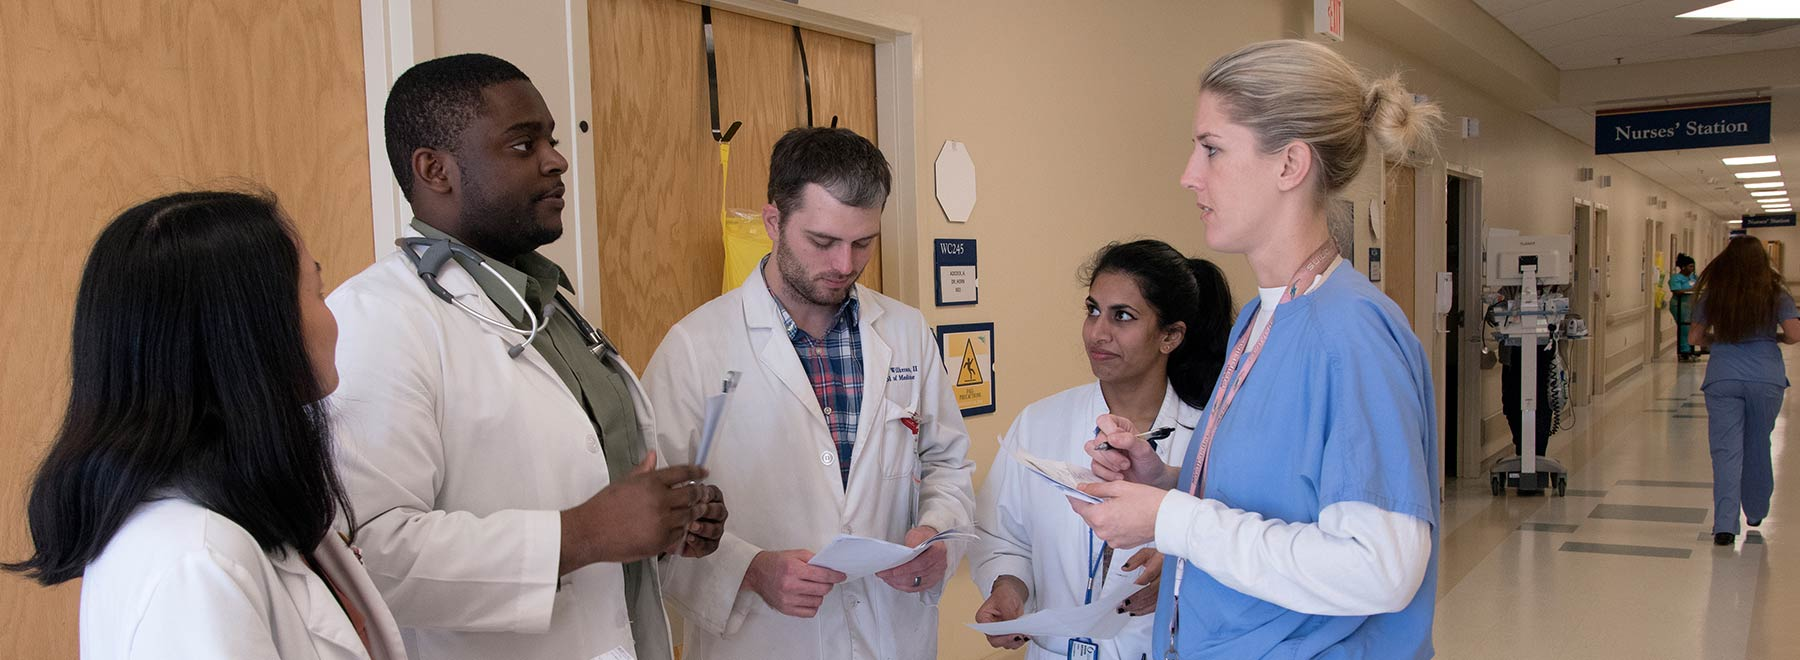 Residents making rounds with School of Medicine faculty